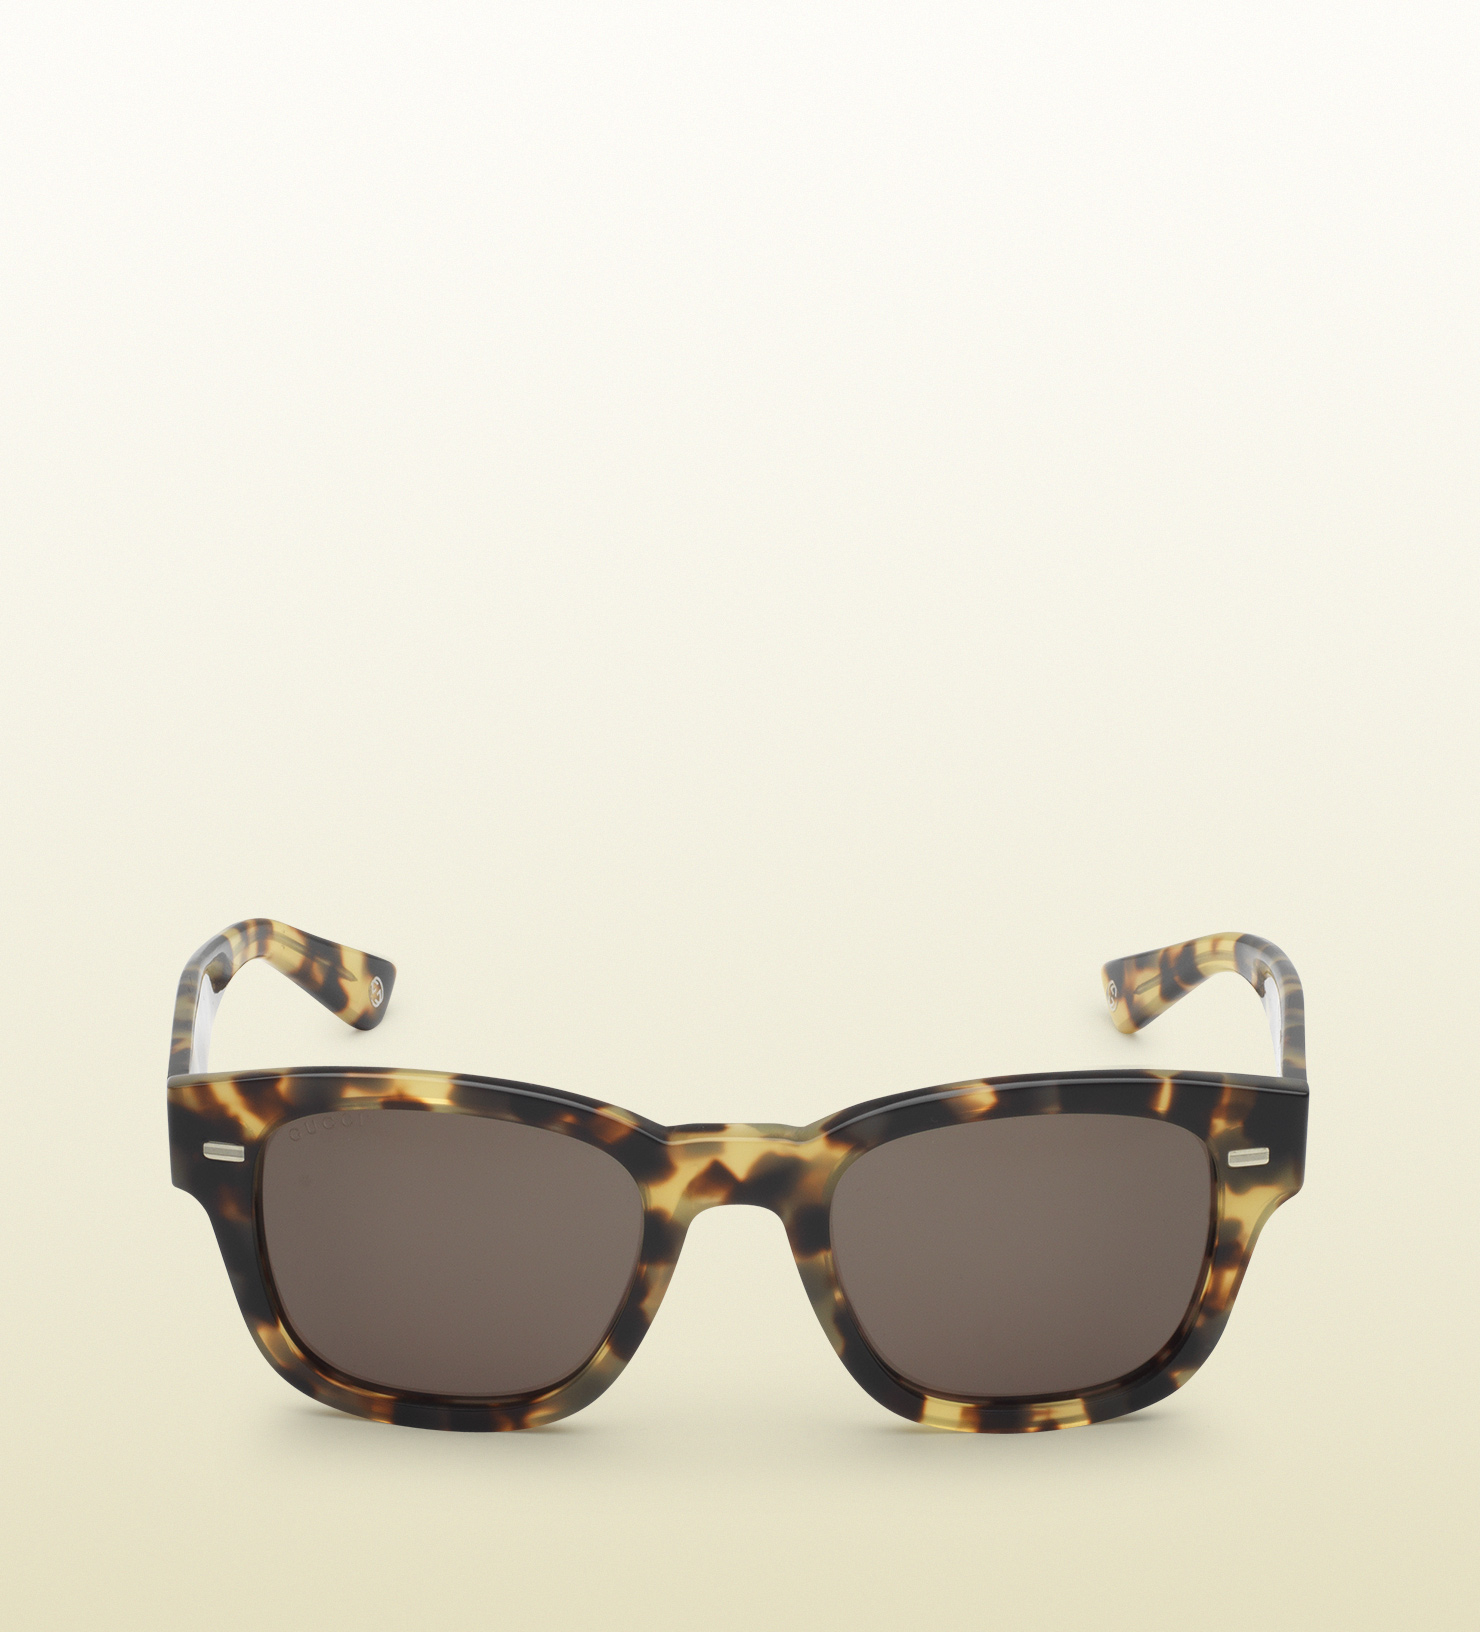 a6ca5fb377 Lyst - Gucci Havana Acetate Round-frame Sunglasses in Yellow for Men